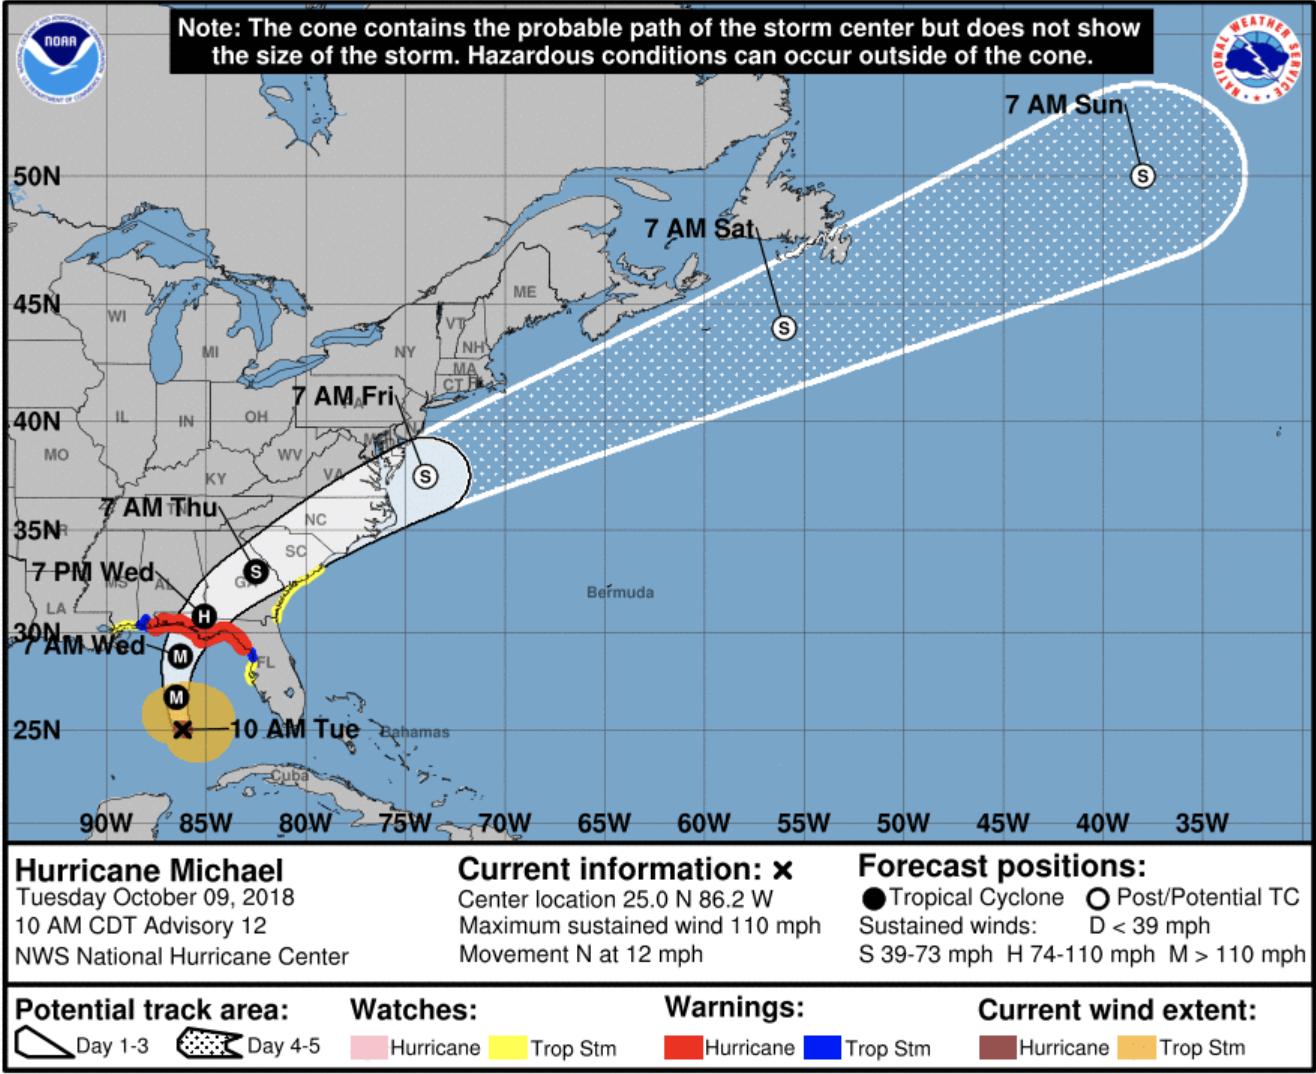 National Hurricane Center Hurricane Michael map